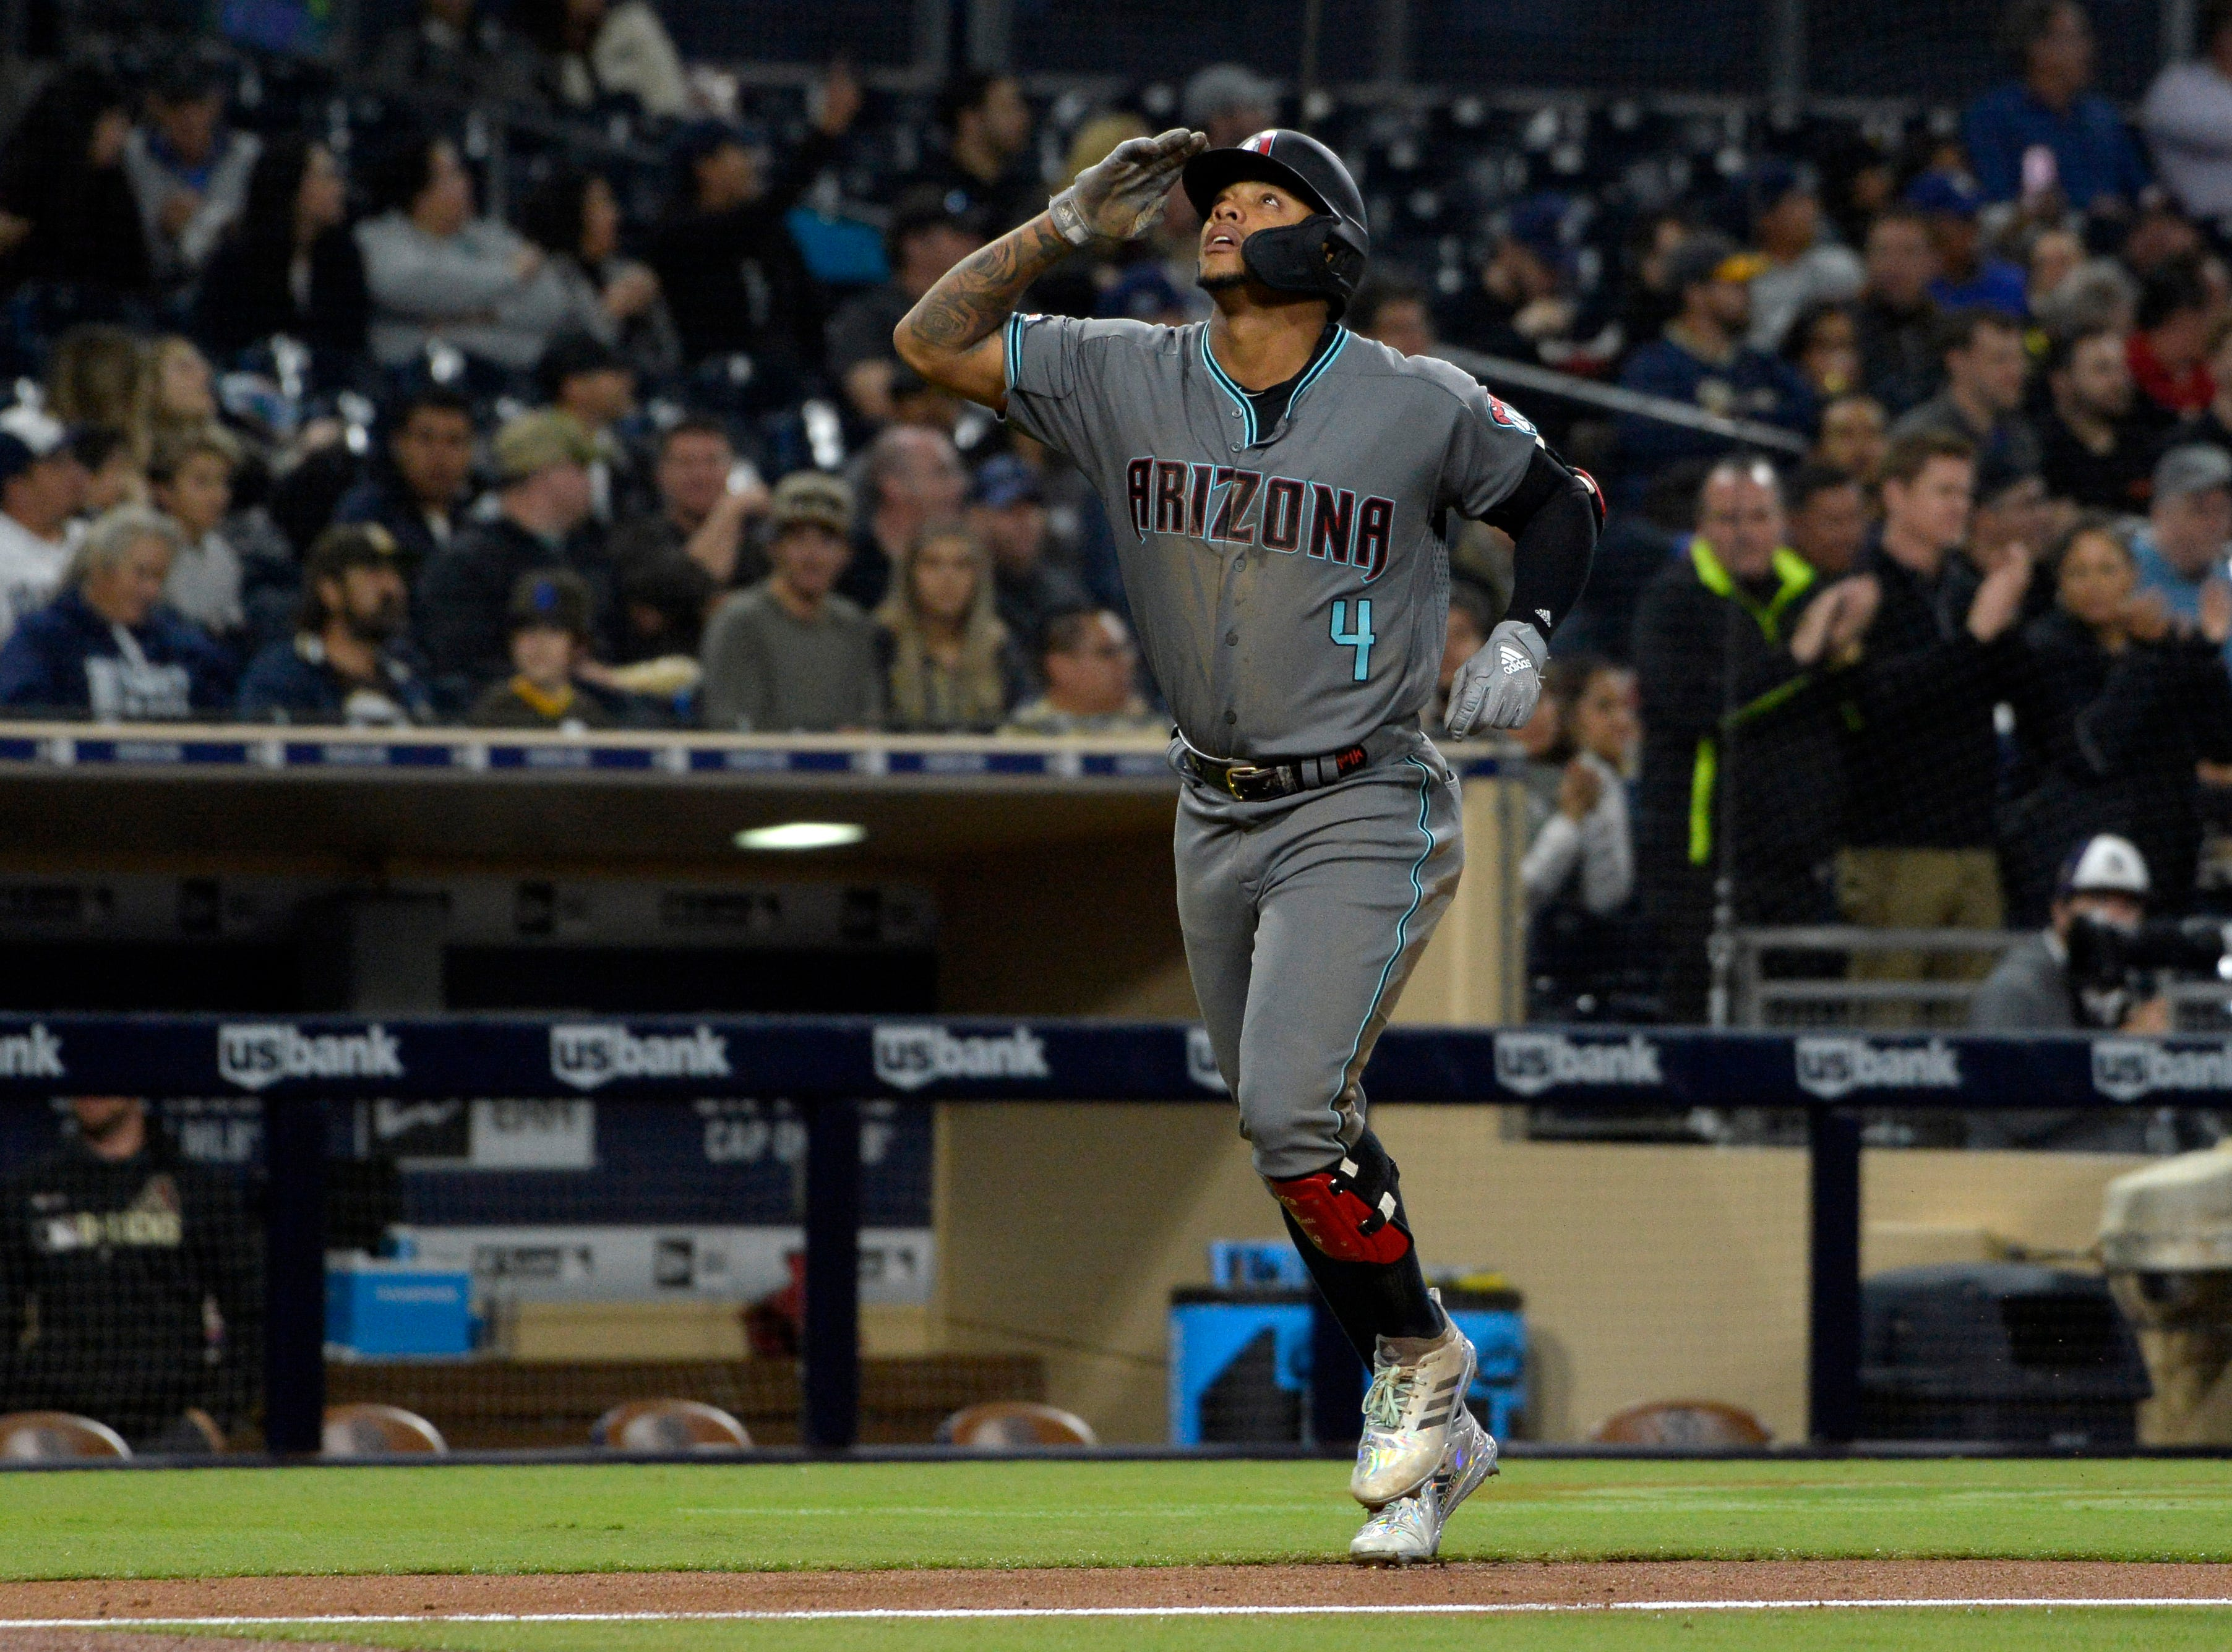 Apr 2, 2019; San Diego, CA, USA; Arizona Diamondbacks center fielder Ketel Marte (4) gestures after a solo home run during the fourth inning against the San Diego Padres at Petco Park. Mandatory Credit: Jake Roth-USA TODAY Sports